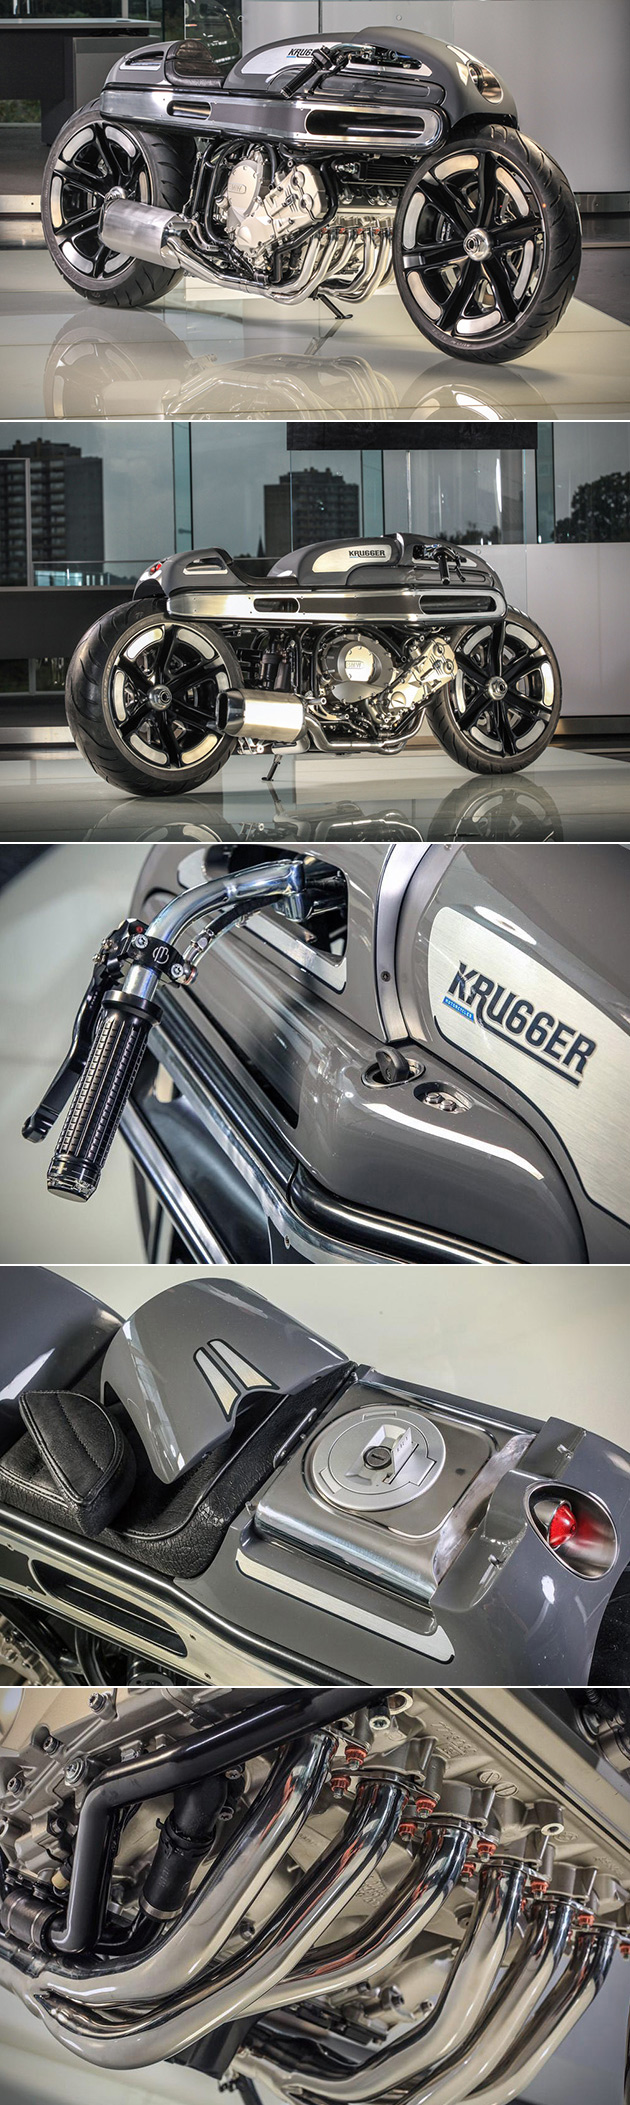 k1600-krugger-bmw-motorcycle